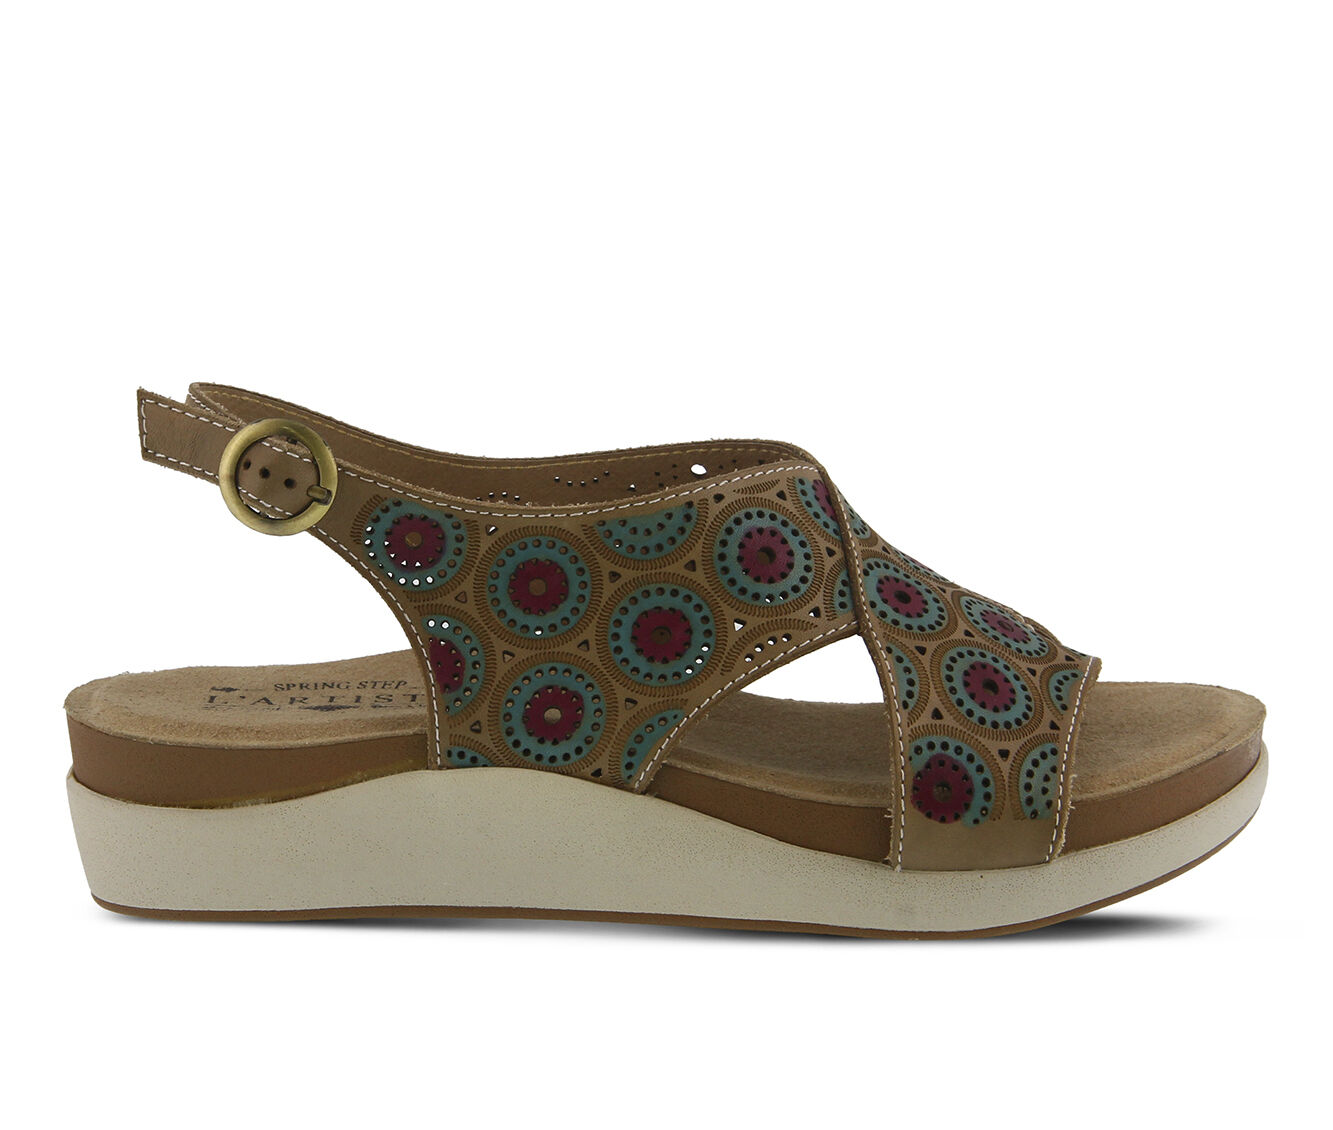 Women's L'ARTISTE Erice Sandals Taupe Multi